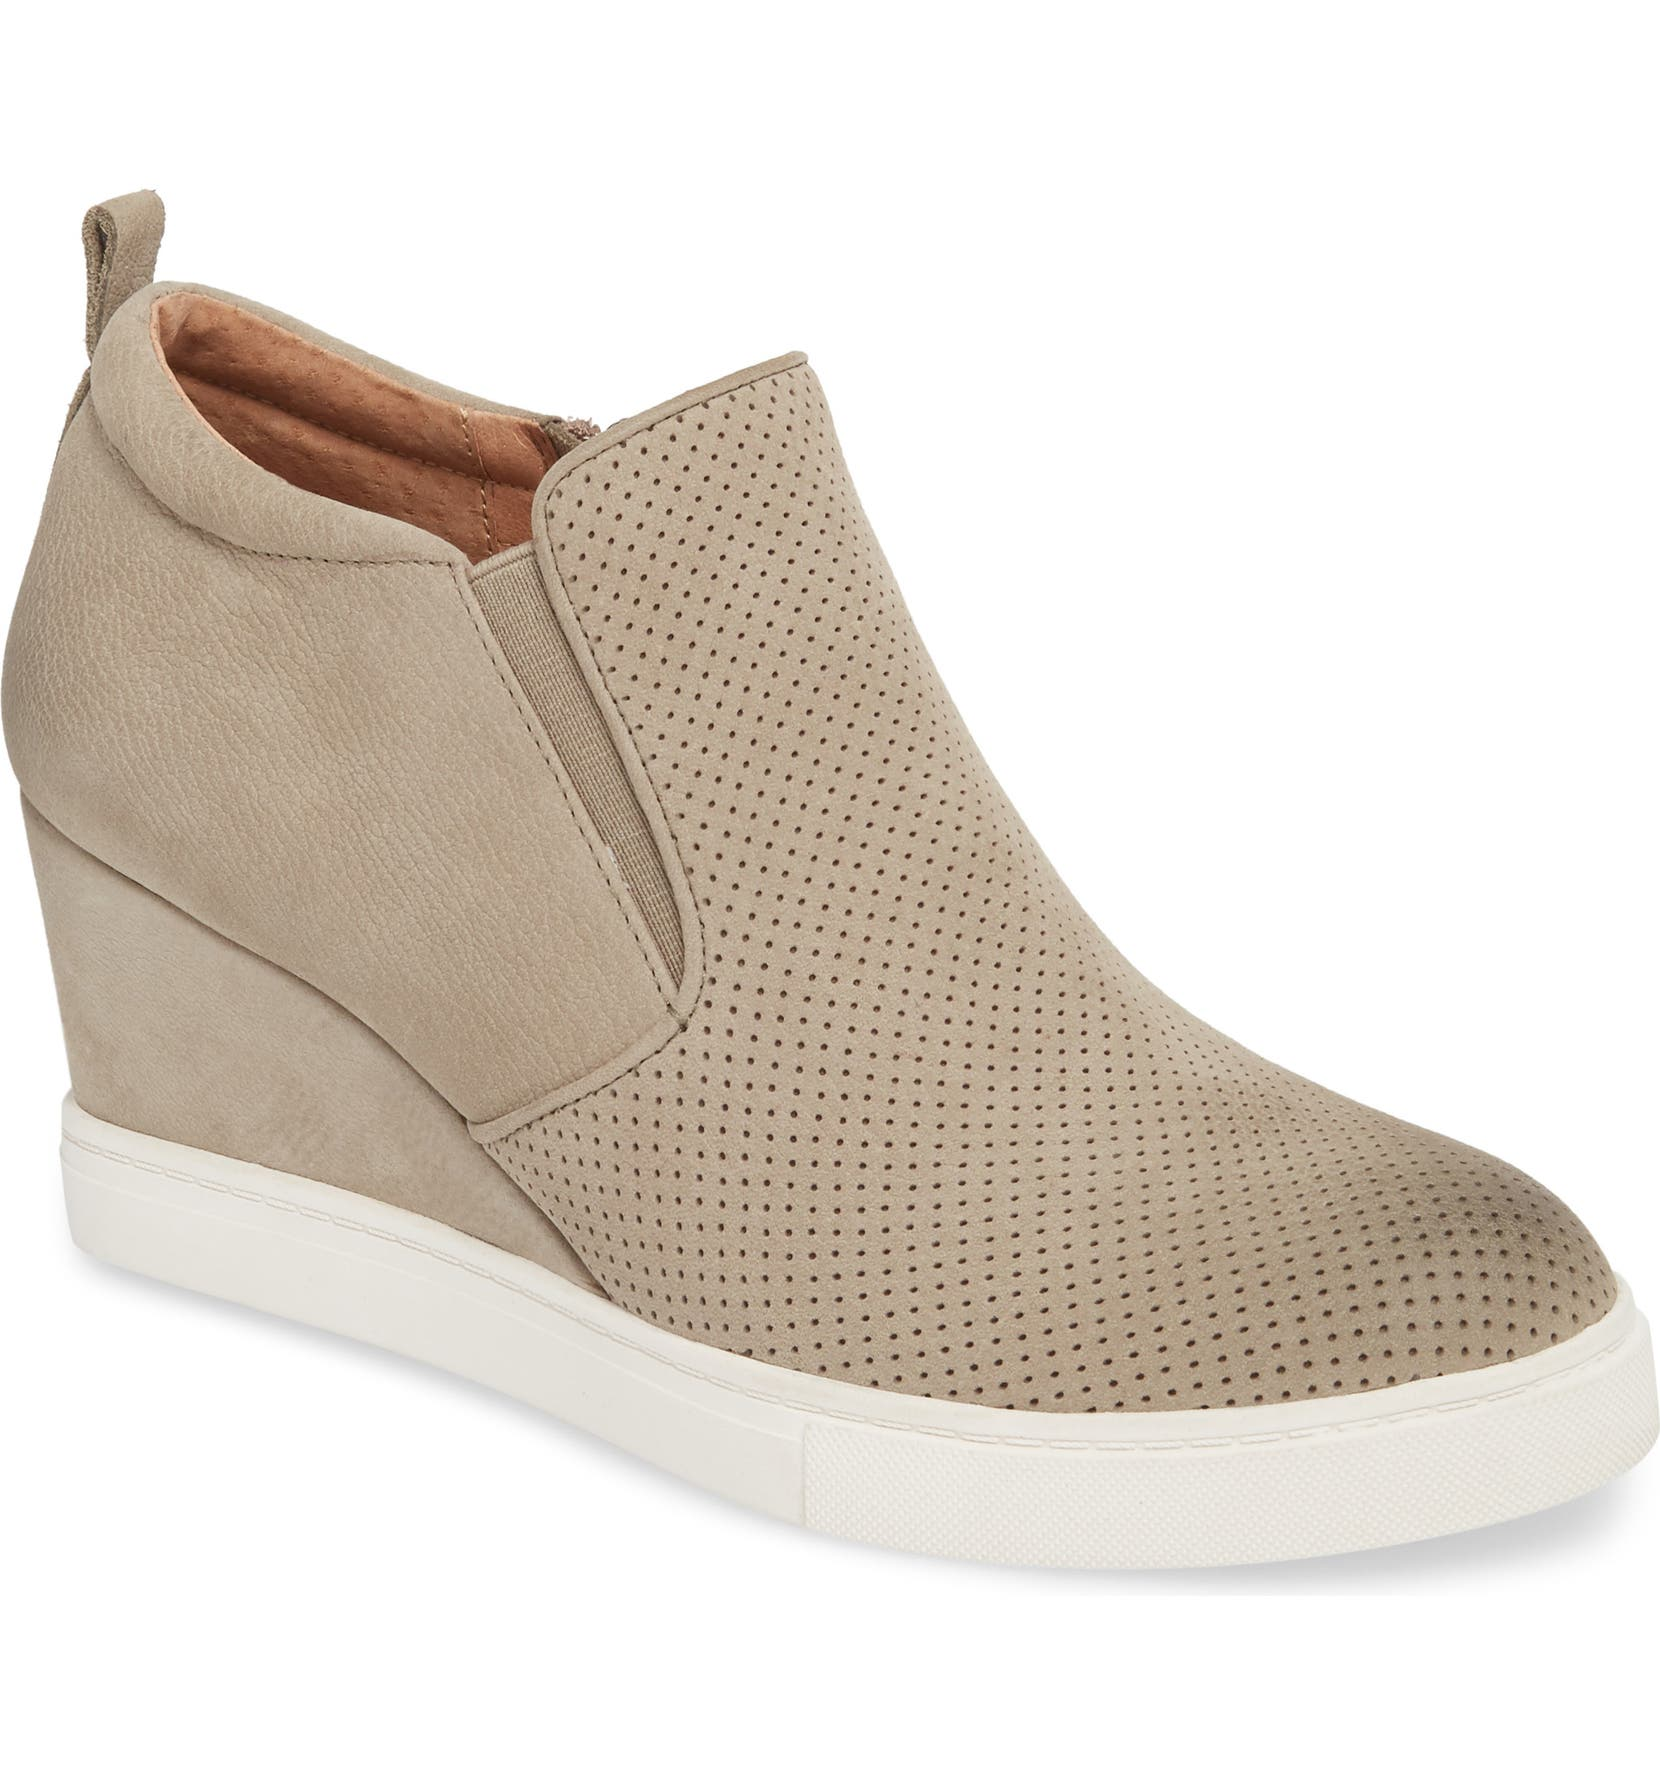 Aiden Wedge Sneaker,                         Main,                         color, TAUPE PERFORATED LEATHER